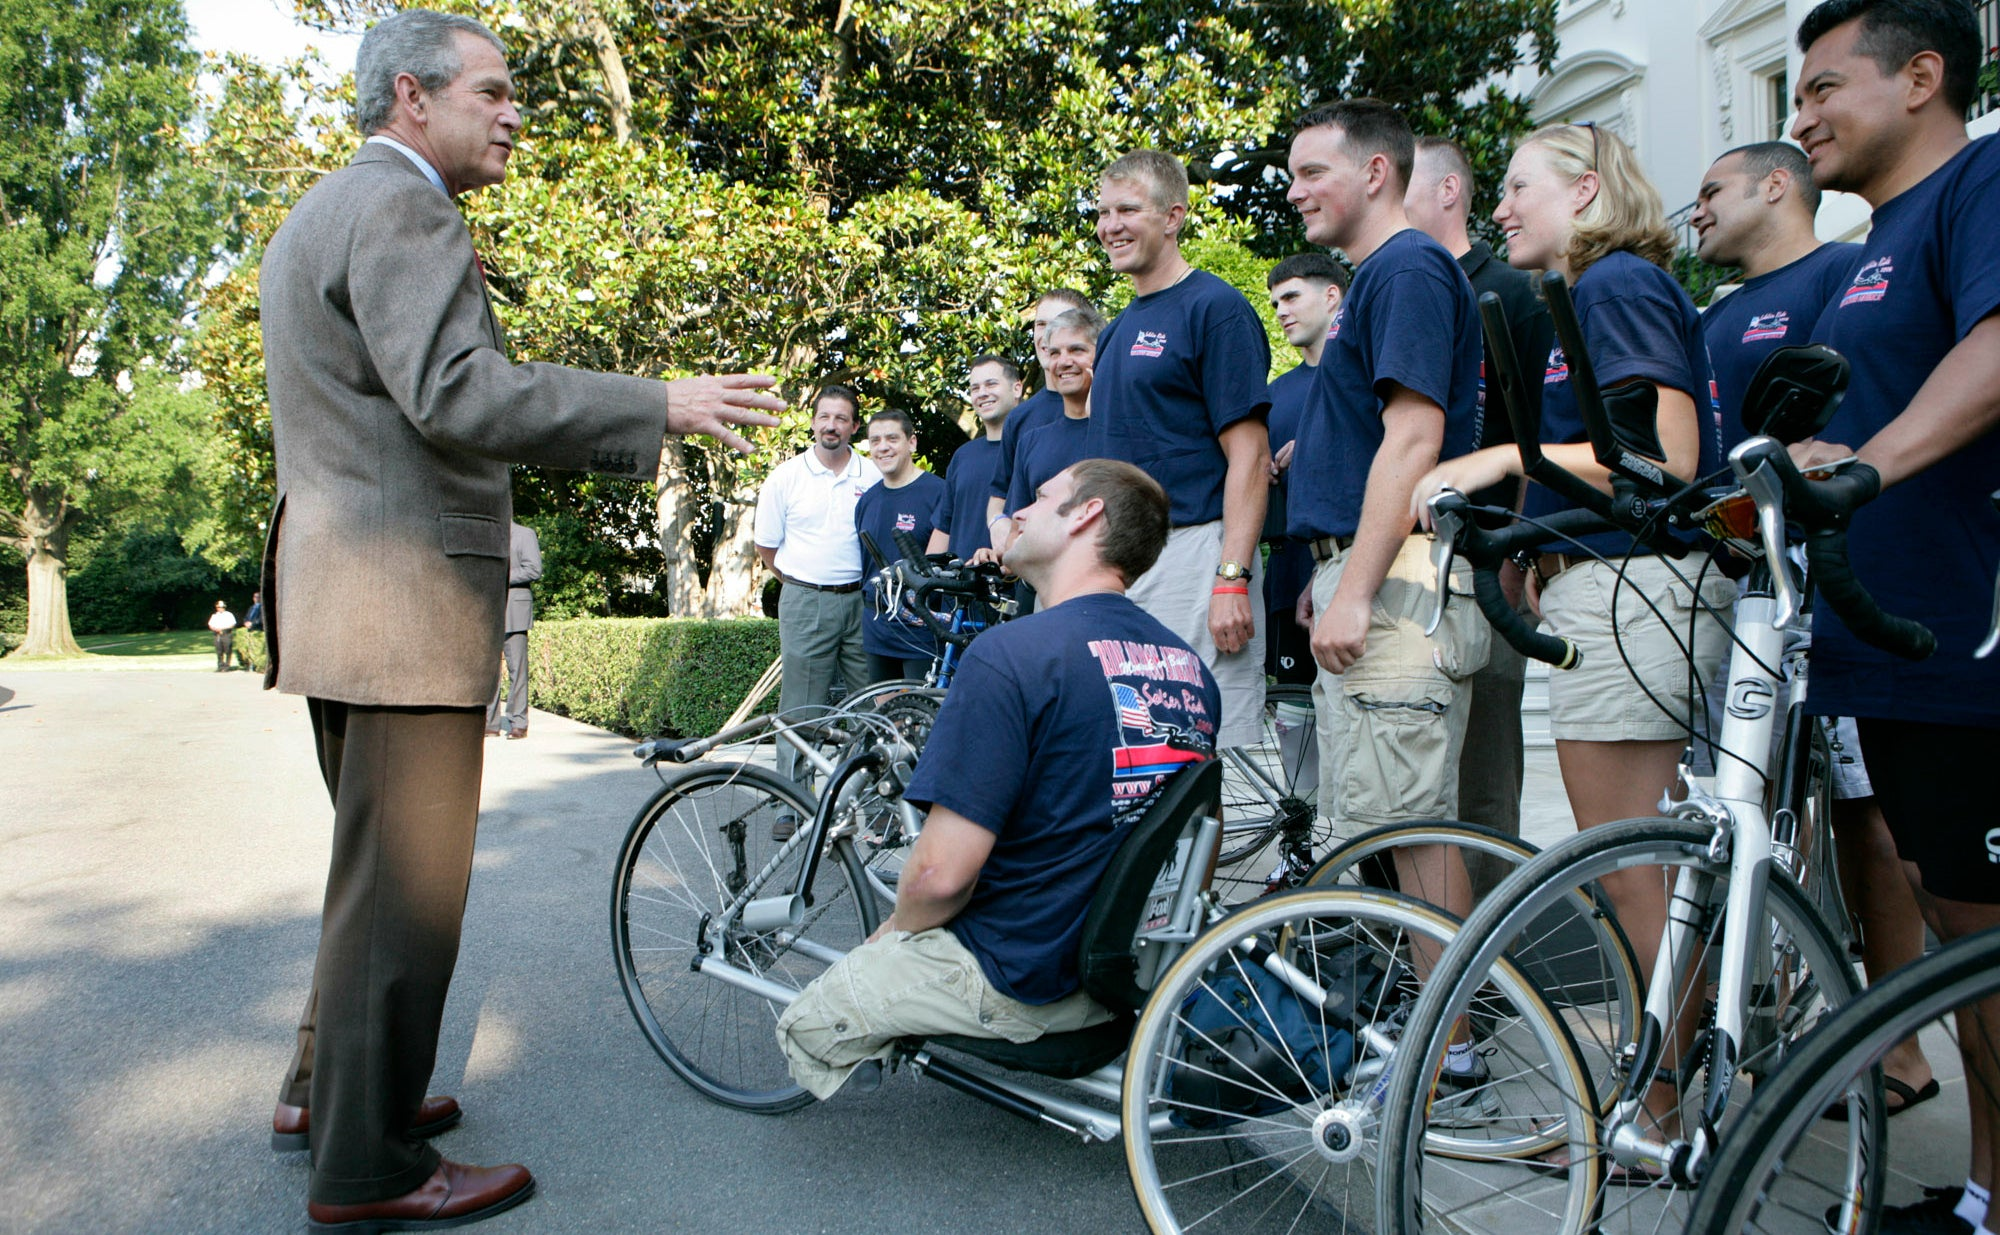 George W. Bush speaks with members of Soldier Ride 2005 National Tour Team. Soldier Ride 2005, comprised of wounded service members, is a 4,200-mile, cross-country bike ride to raise money and support to help prepare wounded soldiers for long-term rehabilitation. (Photo: Eric Draper/White House/ZUMA Press/Newscom)